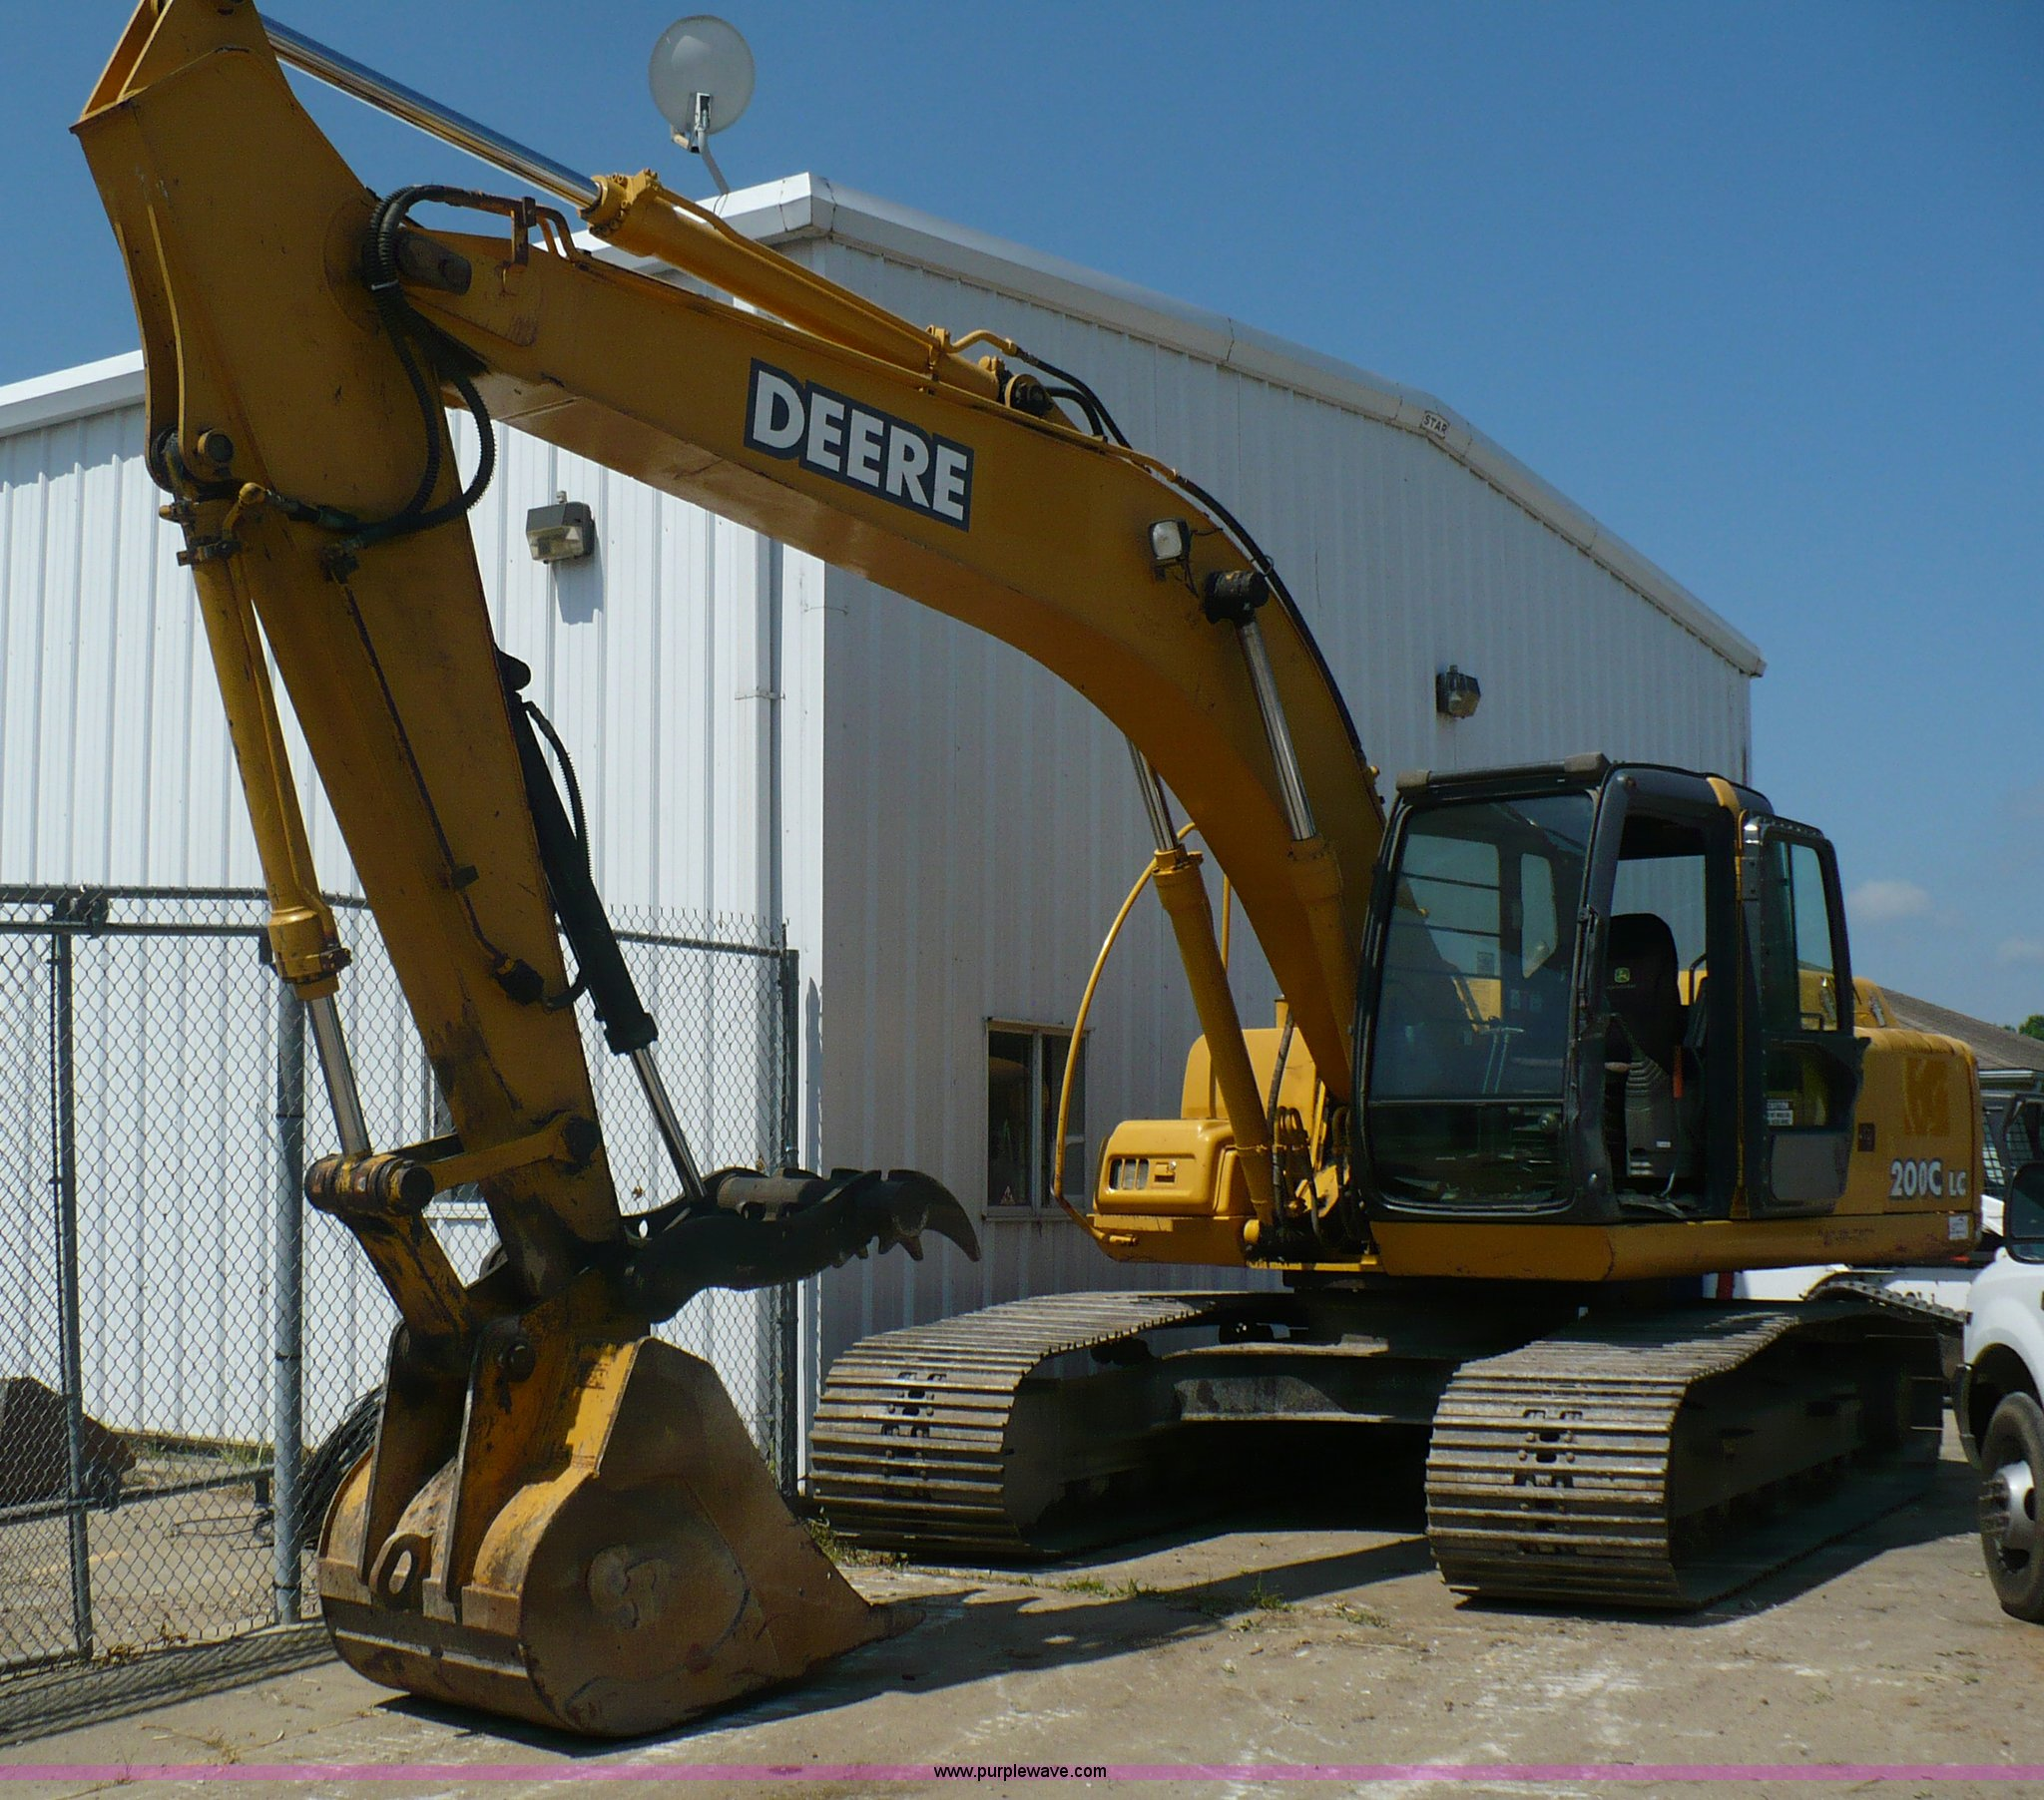 A4807 image for item A4807 2005 John Deere 200LC excavator